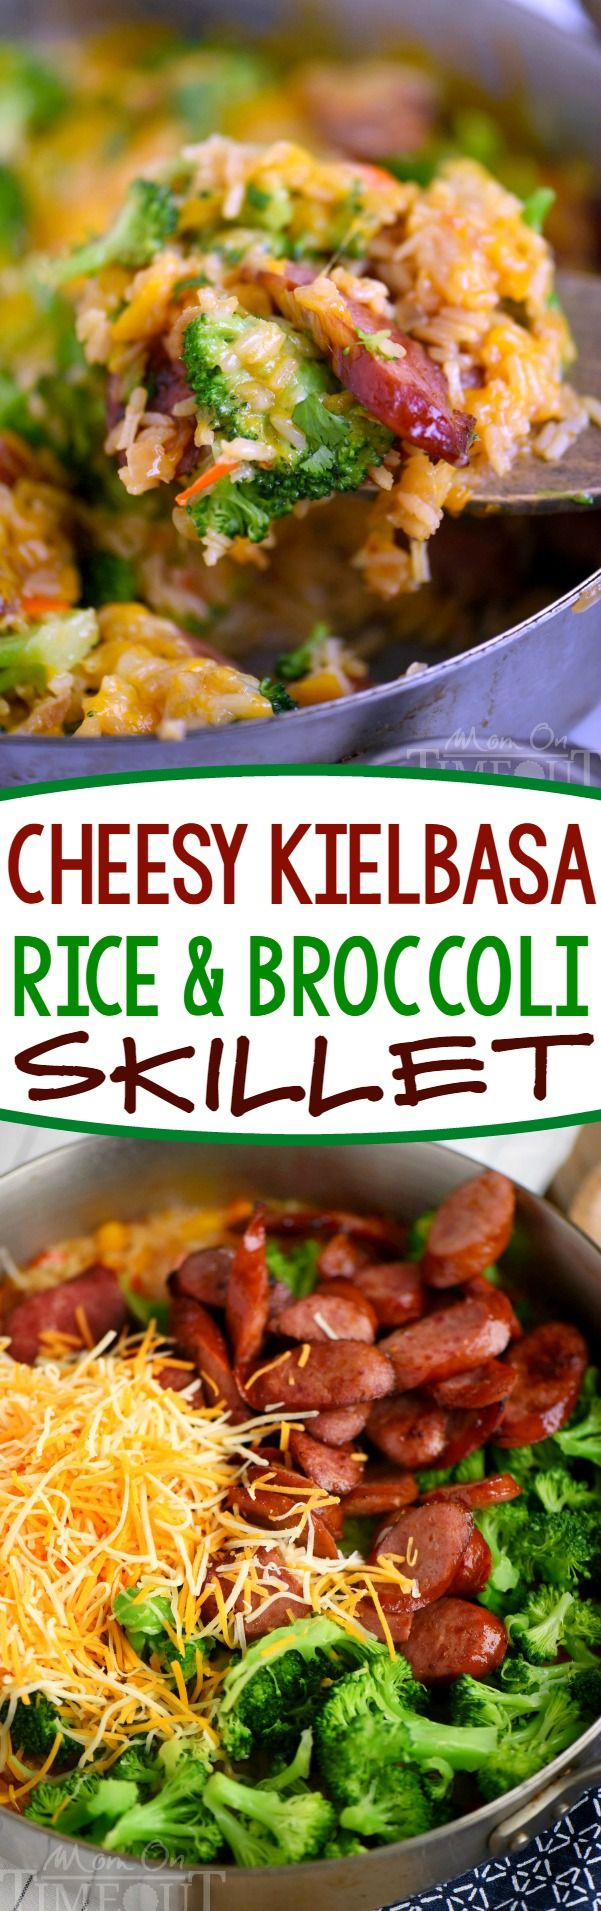 Cheesy Kielbasa, Rice and Broccoli Skillet - your new favorite dinner! This easy skillet recipe comes together in a flash and is made in a single skillet for easy clean-up. Extra cheesy, and just bursting with flavor, it's a dinner recipe you'll find yourself making again and again.